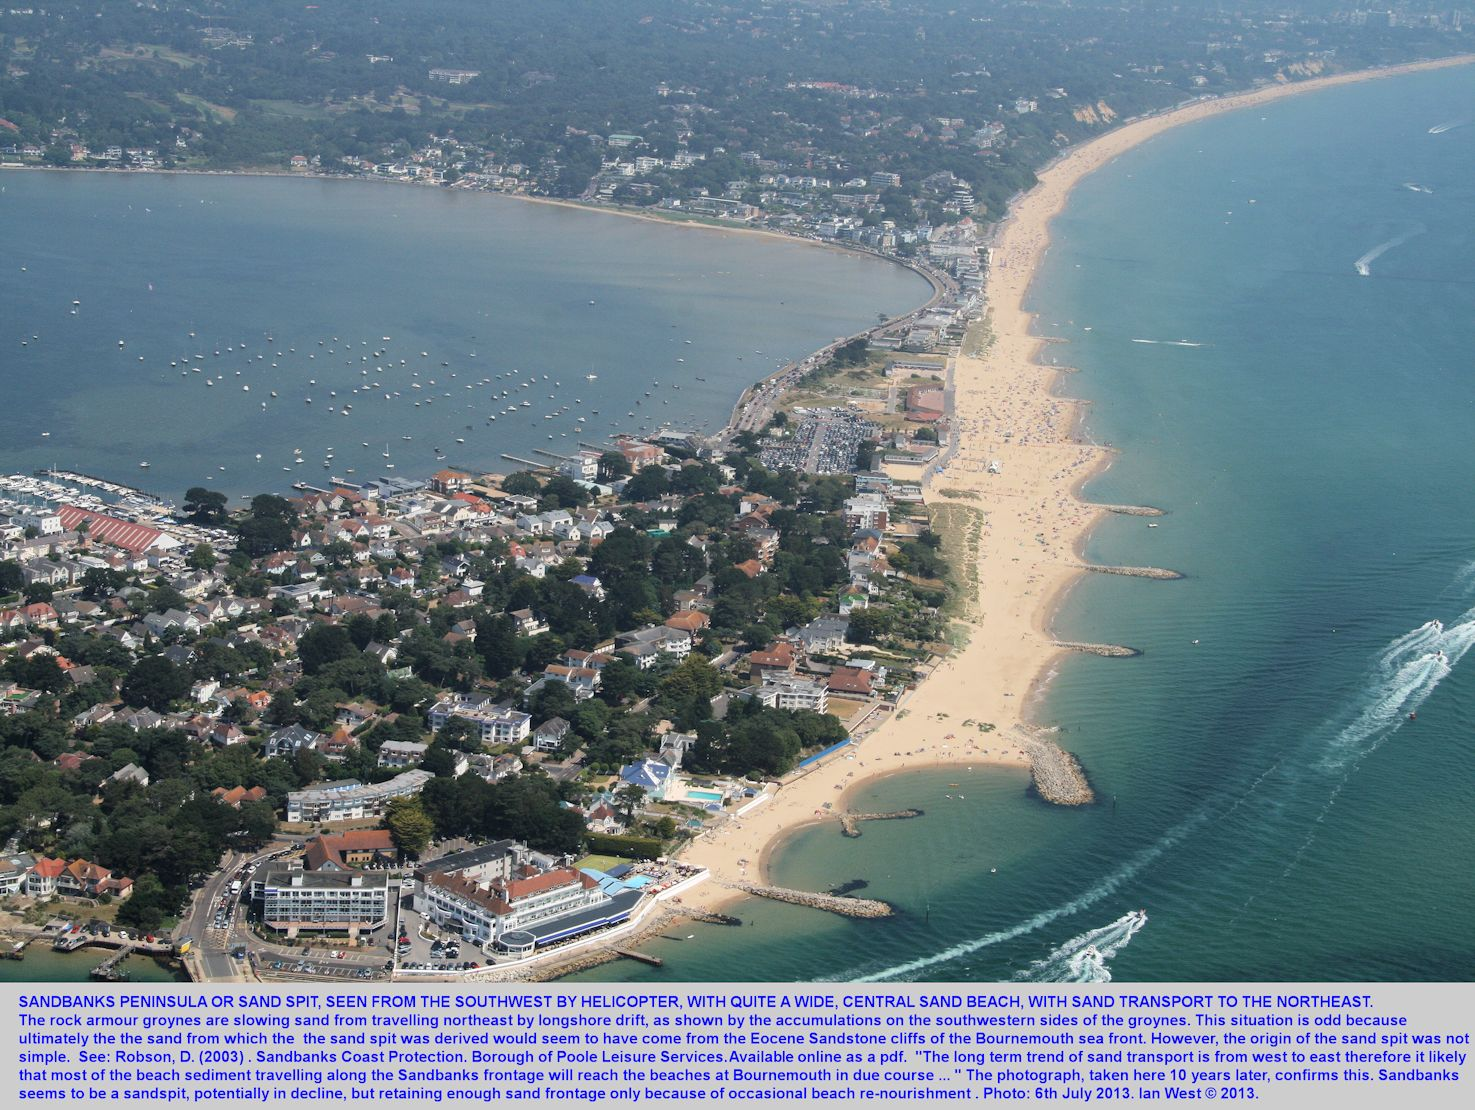 A helicopter view of the central part of the Sandbanks beach, Dorset, where there is some sand loss by longshore drift towards the northeast, photograph 6th July 2013